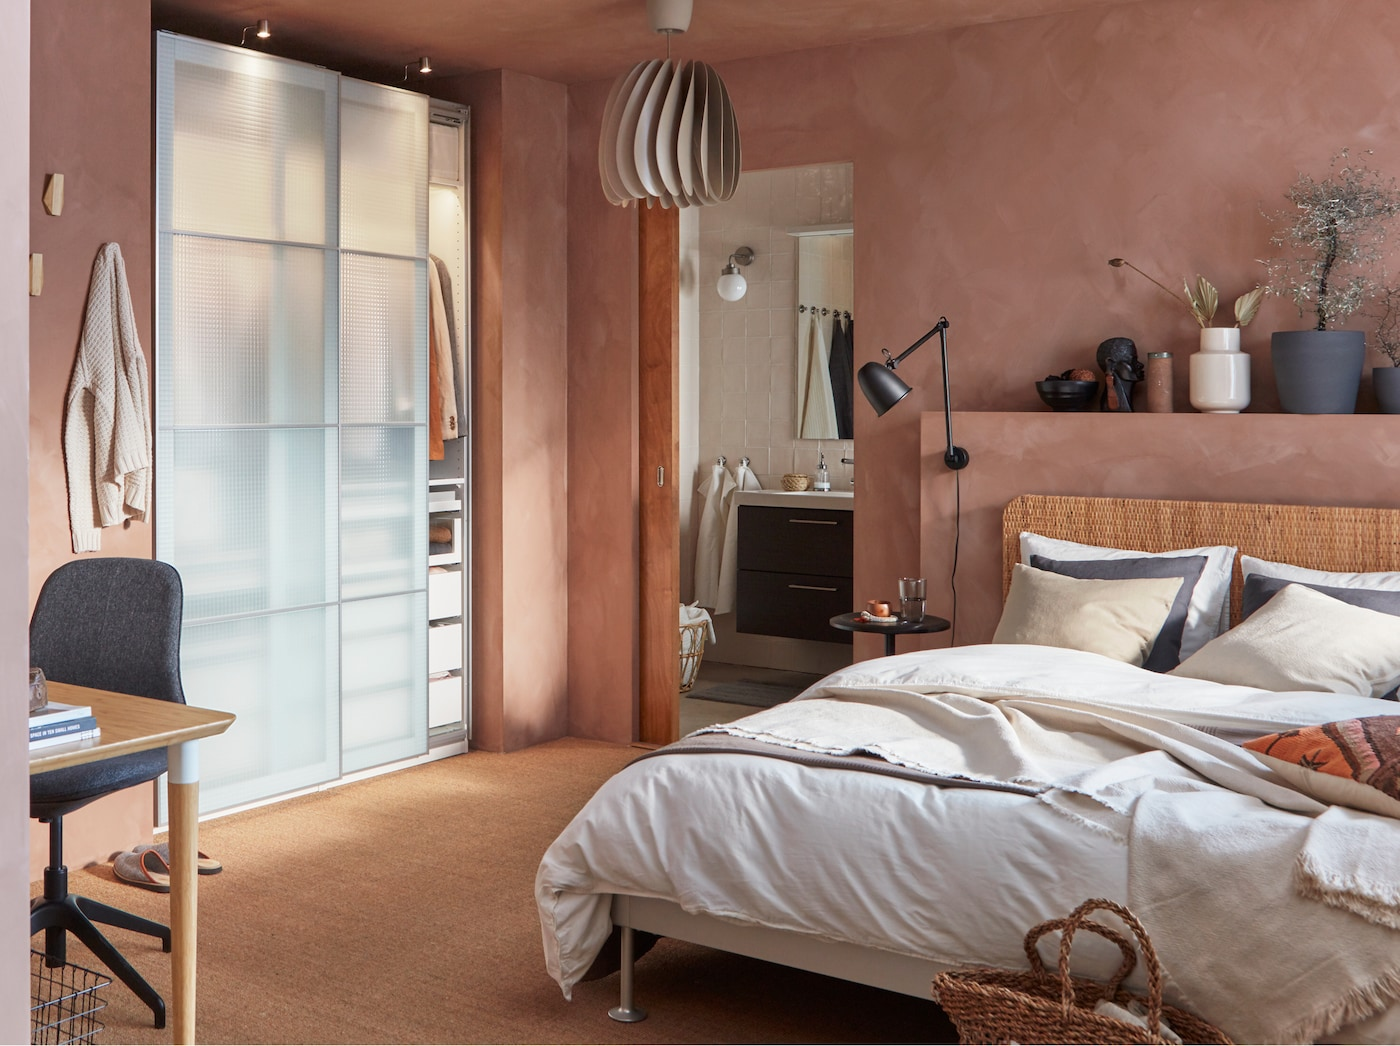 A bedroom with a bed frame in aluminium and a rattan headboard, wardrobe with frosted glass doors and a beige pendant lamp.